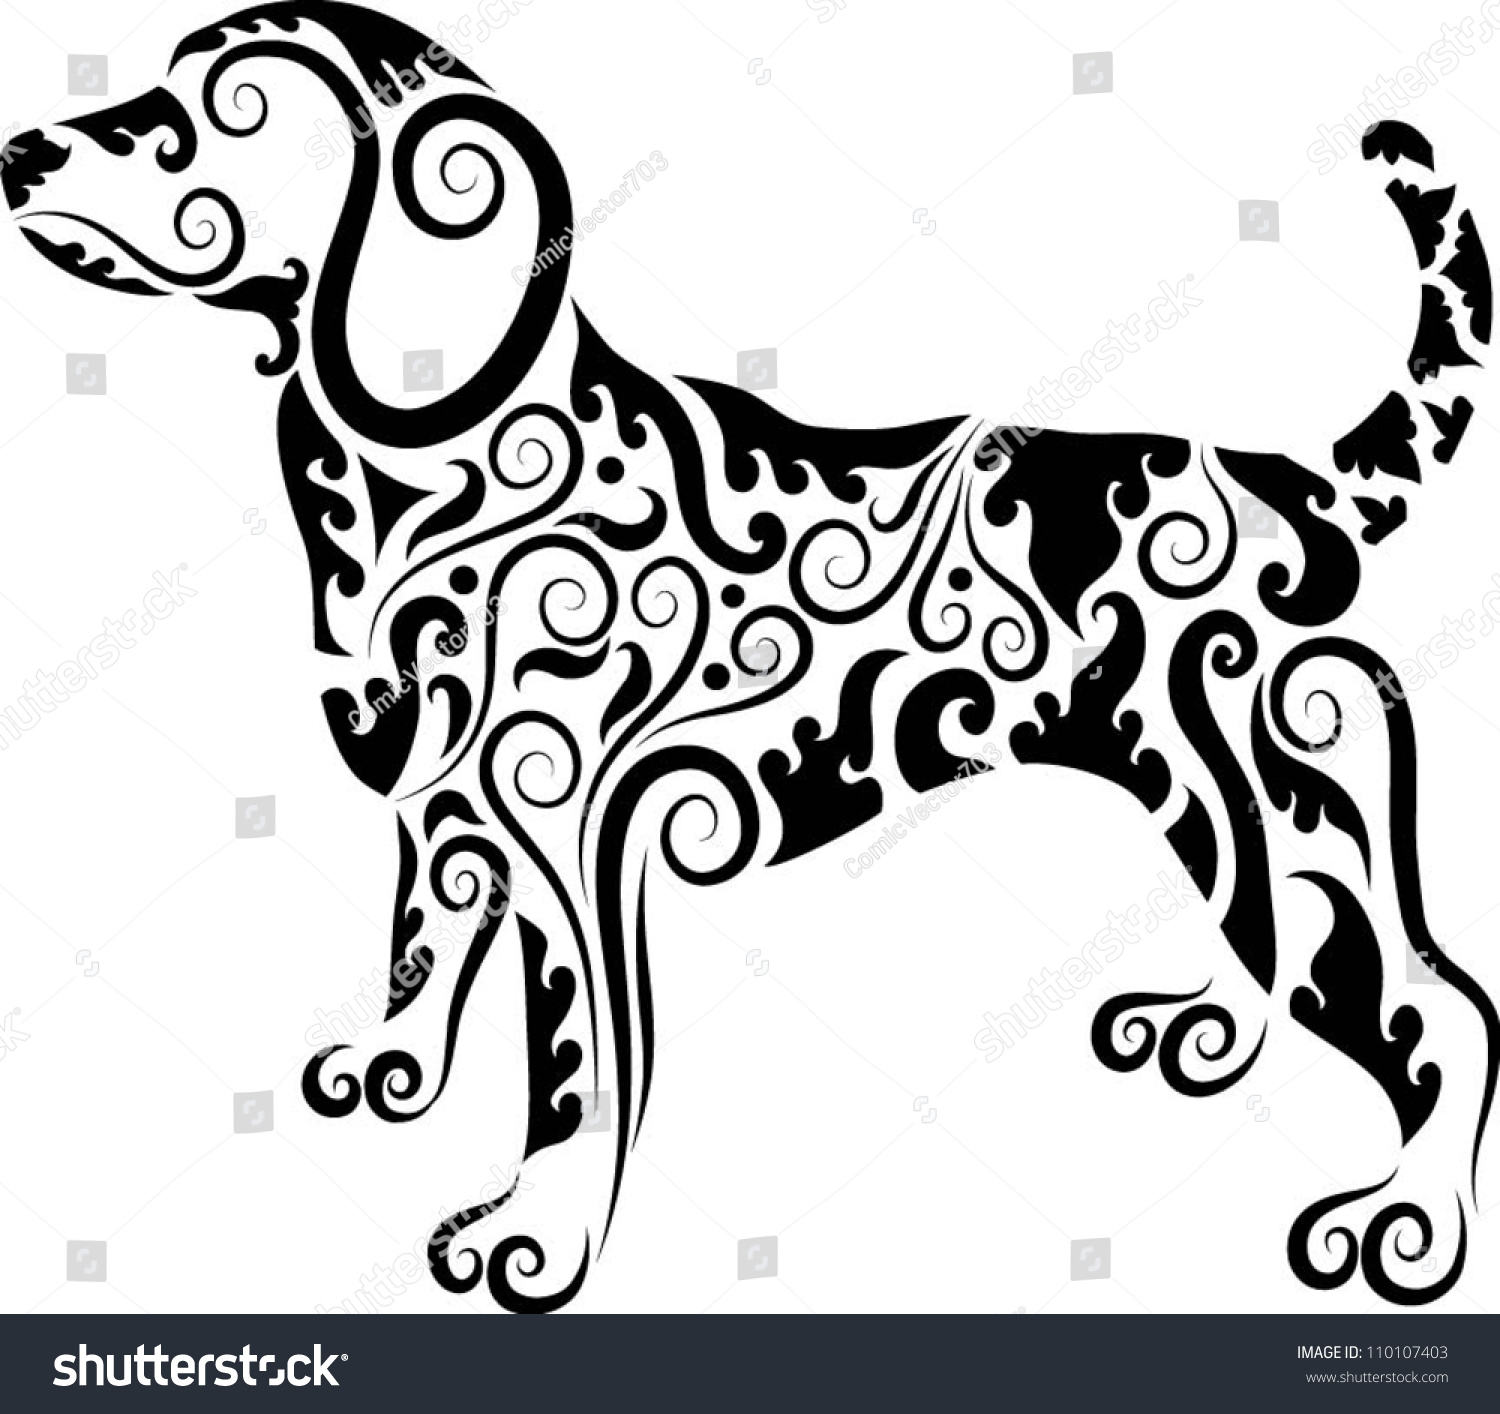 Animal ornaments - Dog Ornaments Animal Drawing With Floral Ornament Decoration Use For Tattoo T